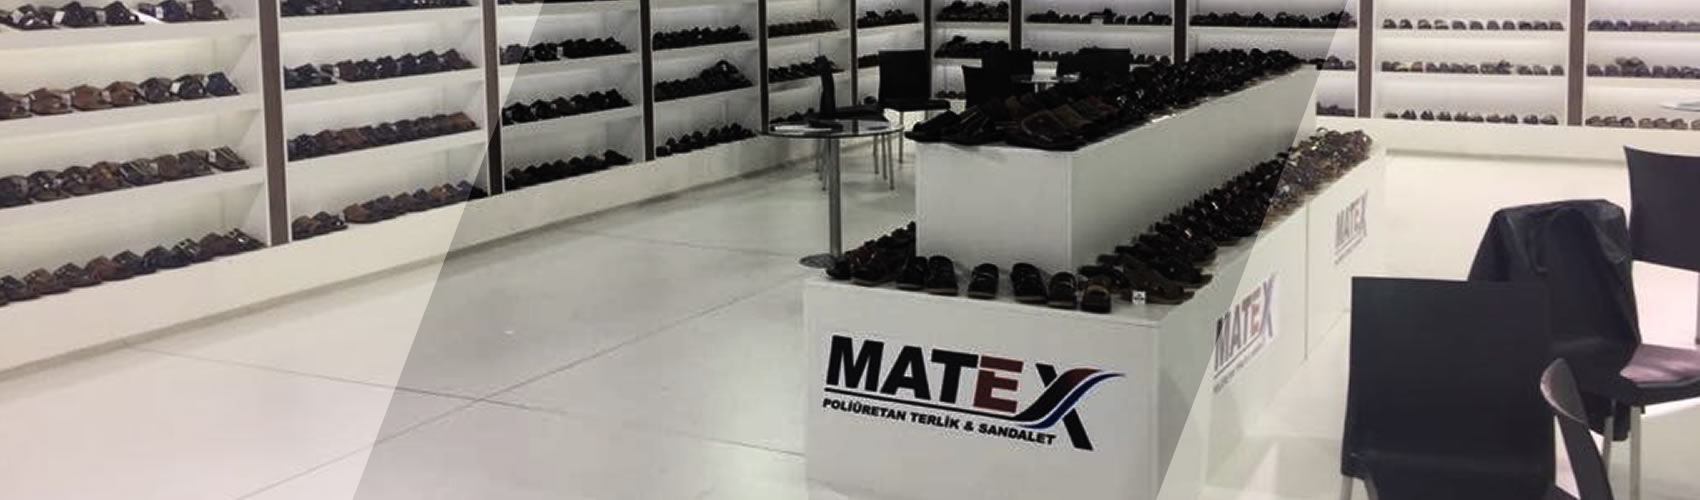 Matex Slippers and Sandals